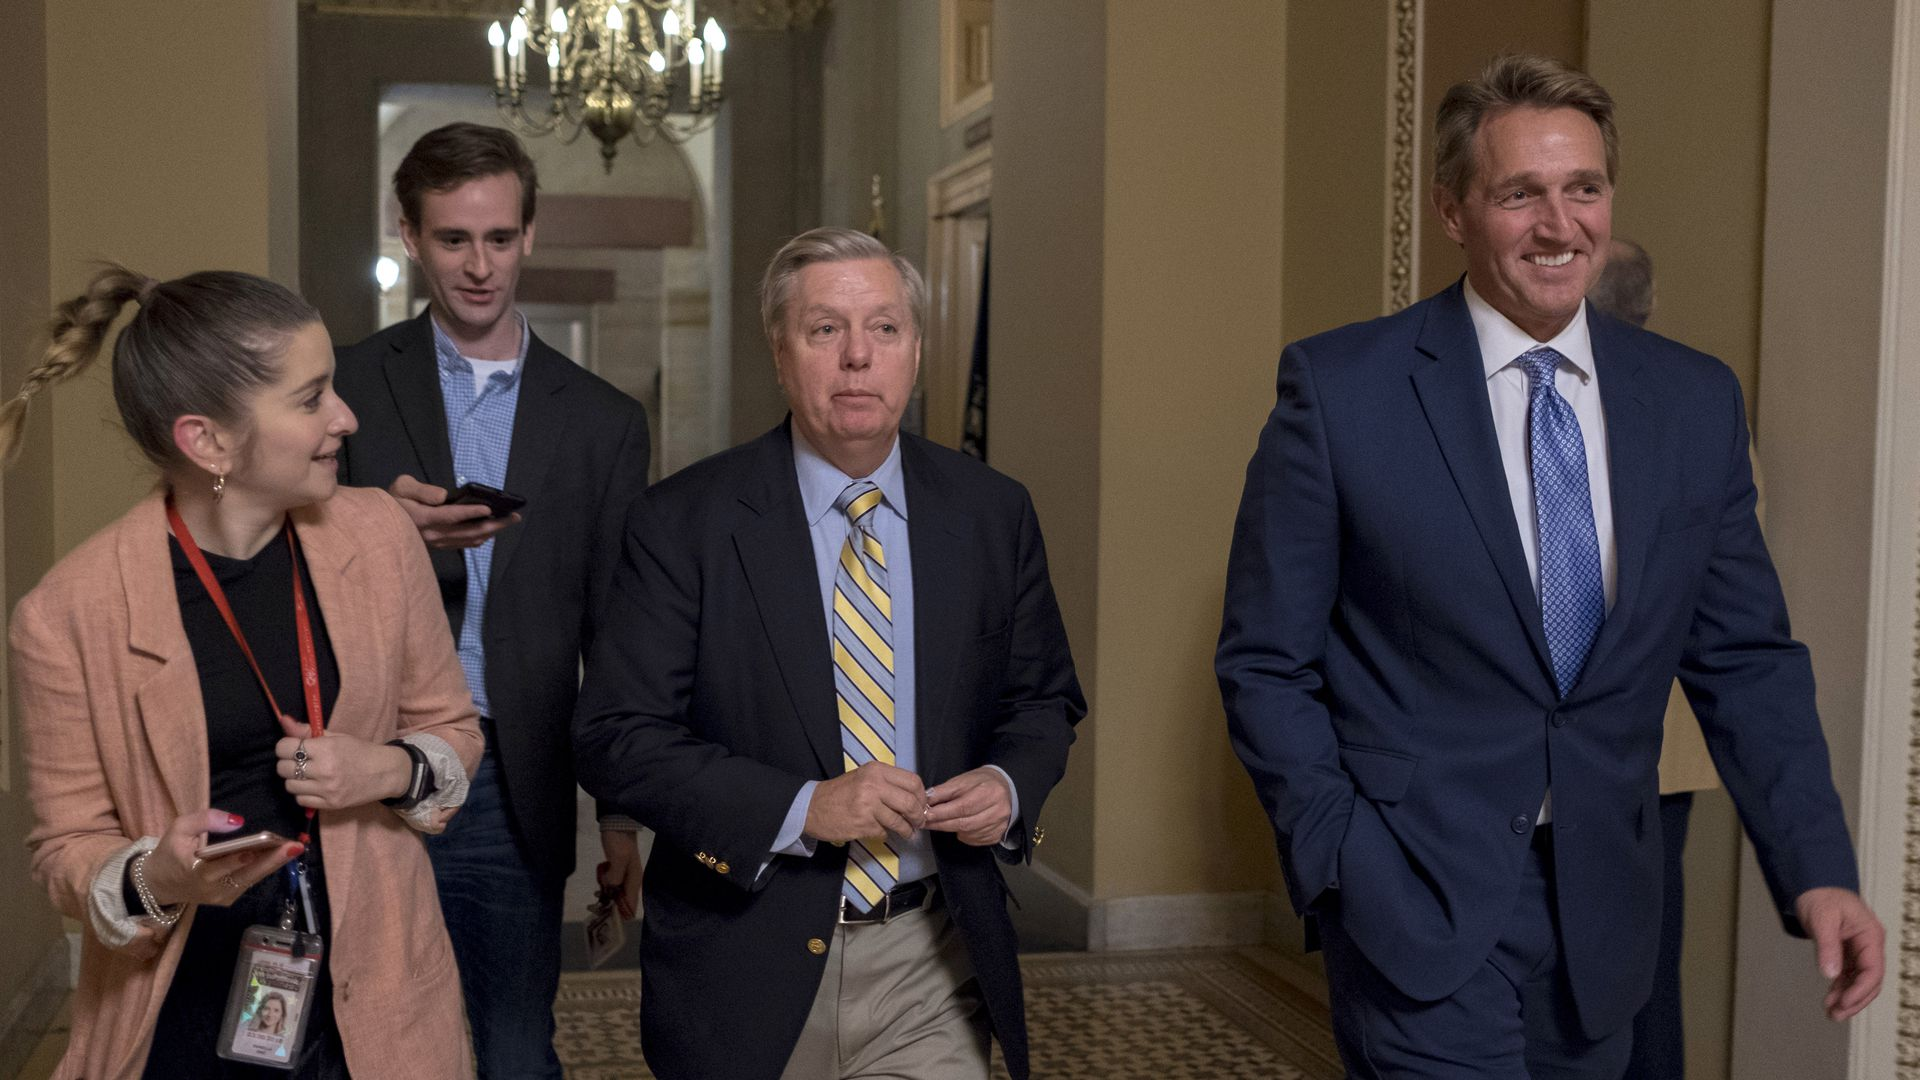 Lindsey Graham and Jeff Flake in the Capitol